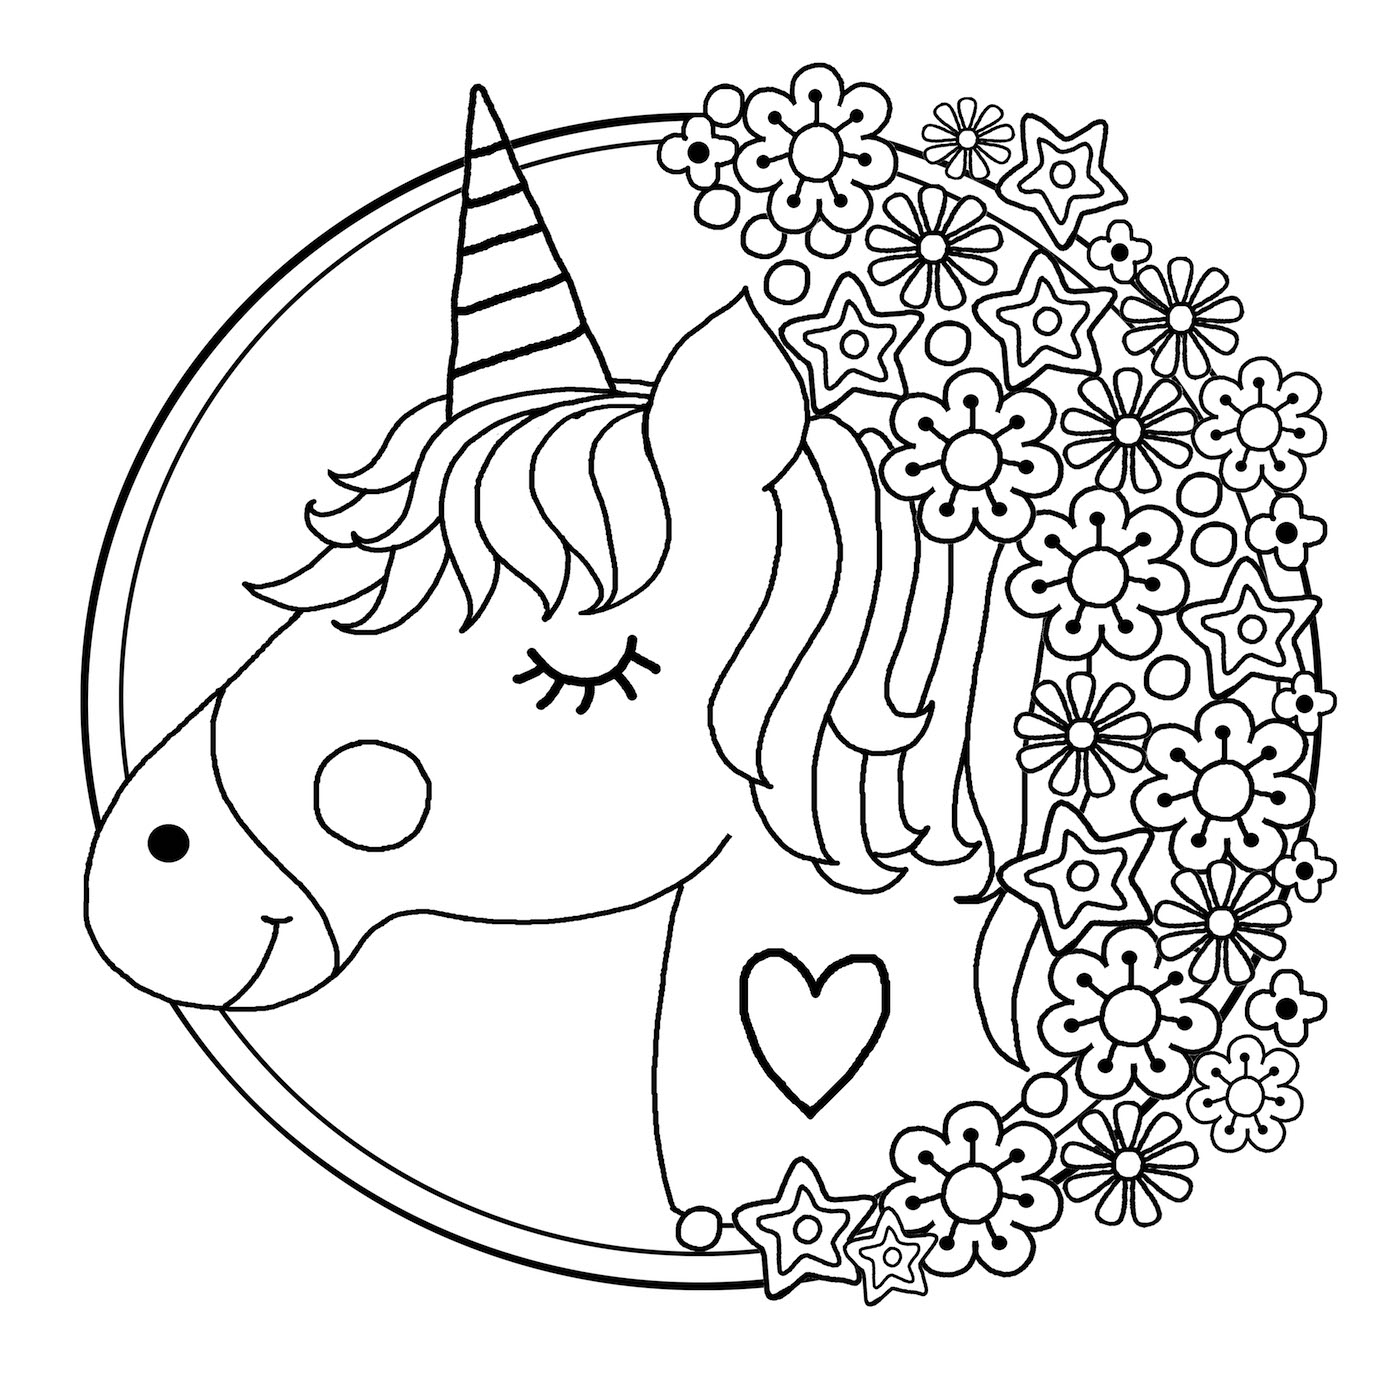 coloring page of unicorn cute unicorn coloring page free printable coloring pages unicorn page coloring of